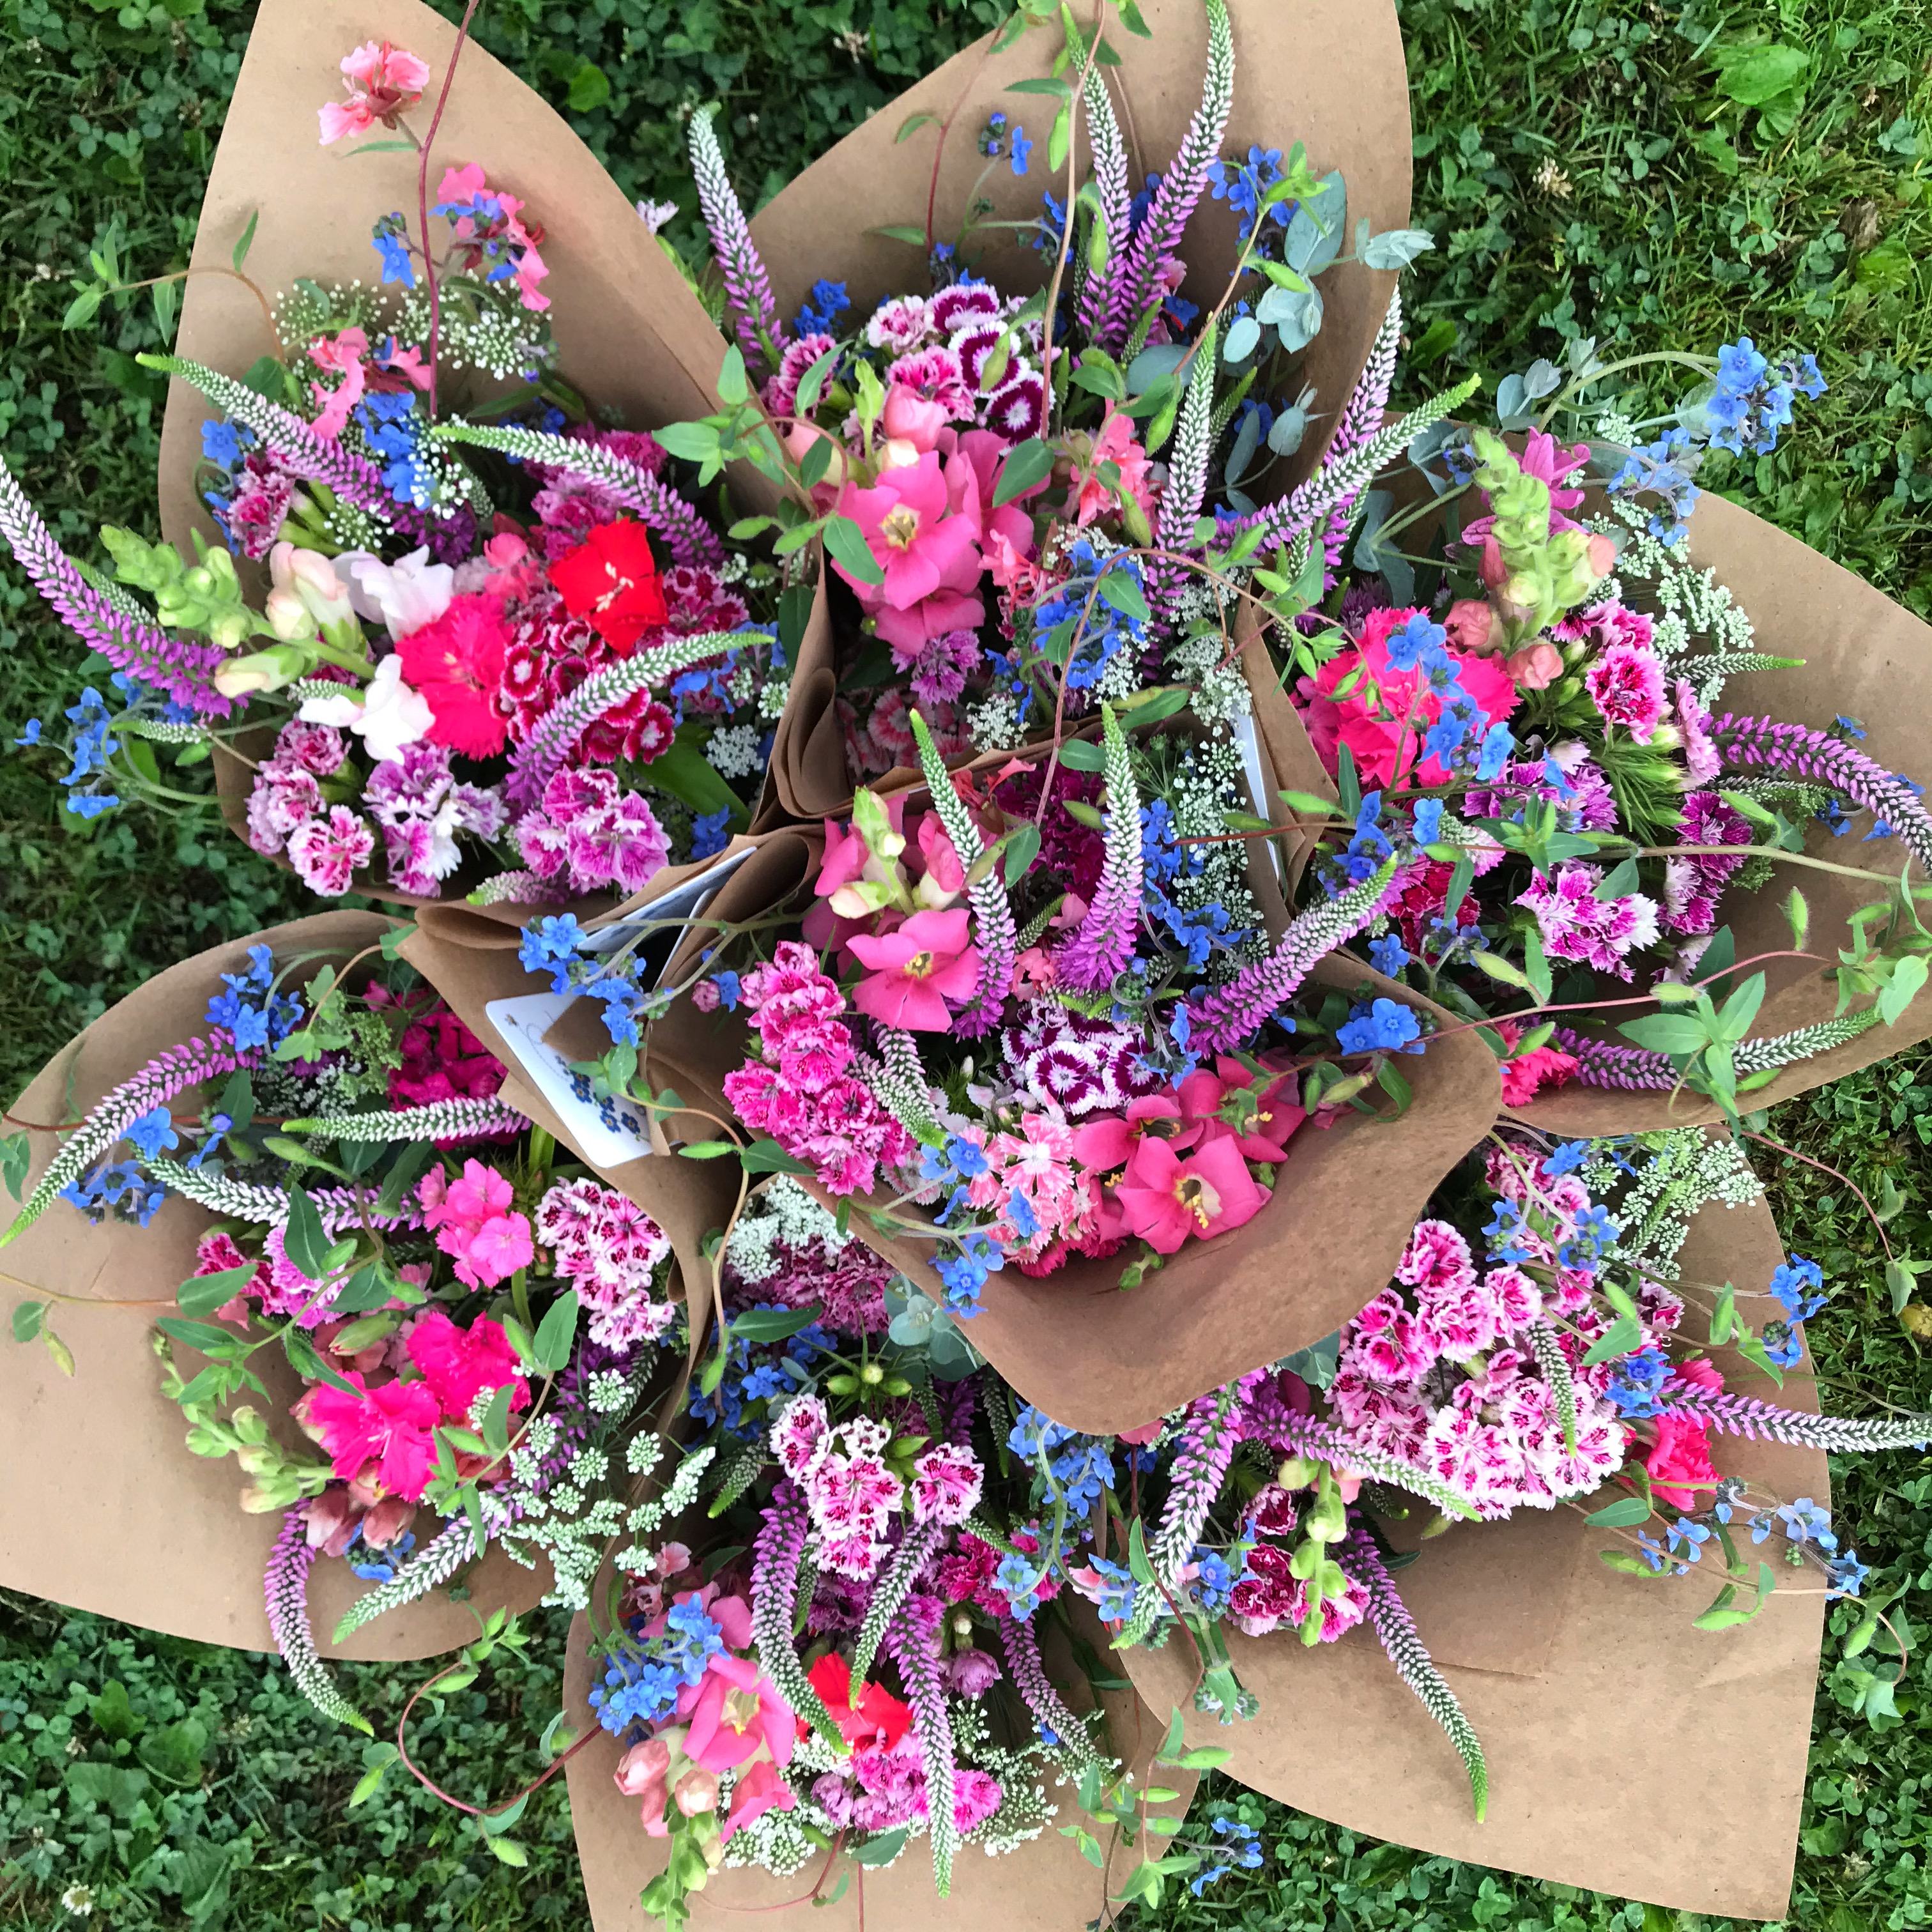 General Store Bouquets